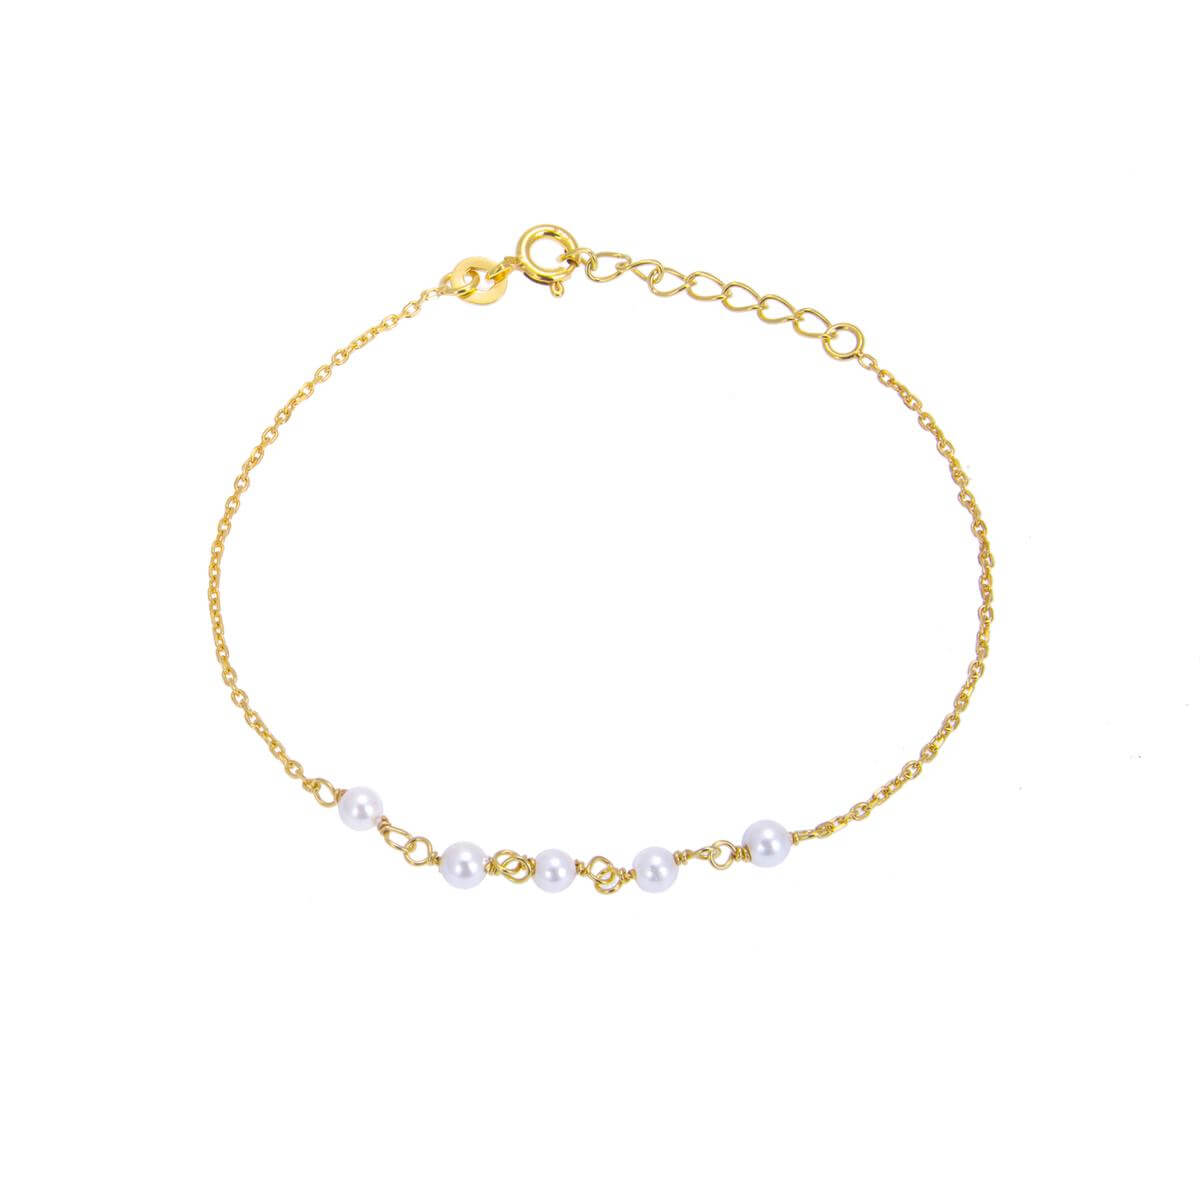 Yellow Gold Plated Sterling Silver Fine Bracelet with 3.5mm Pearls